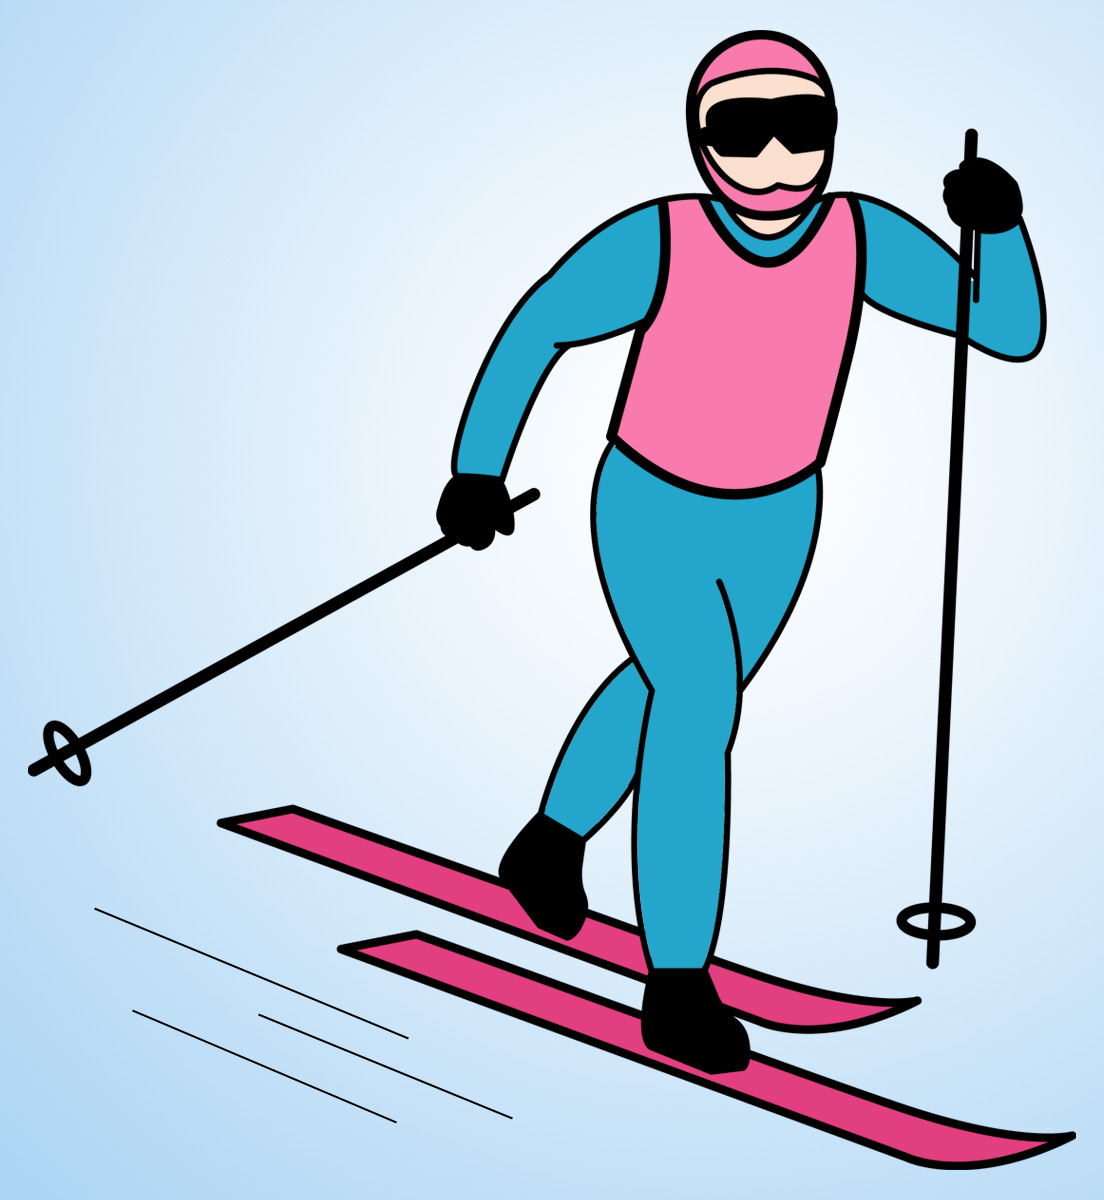 Skiing clipart snow skiing Skiing  Snow Background Clipart